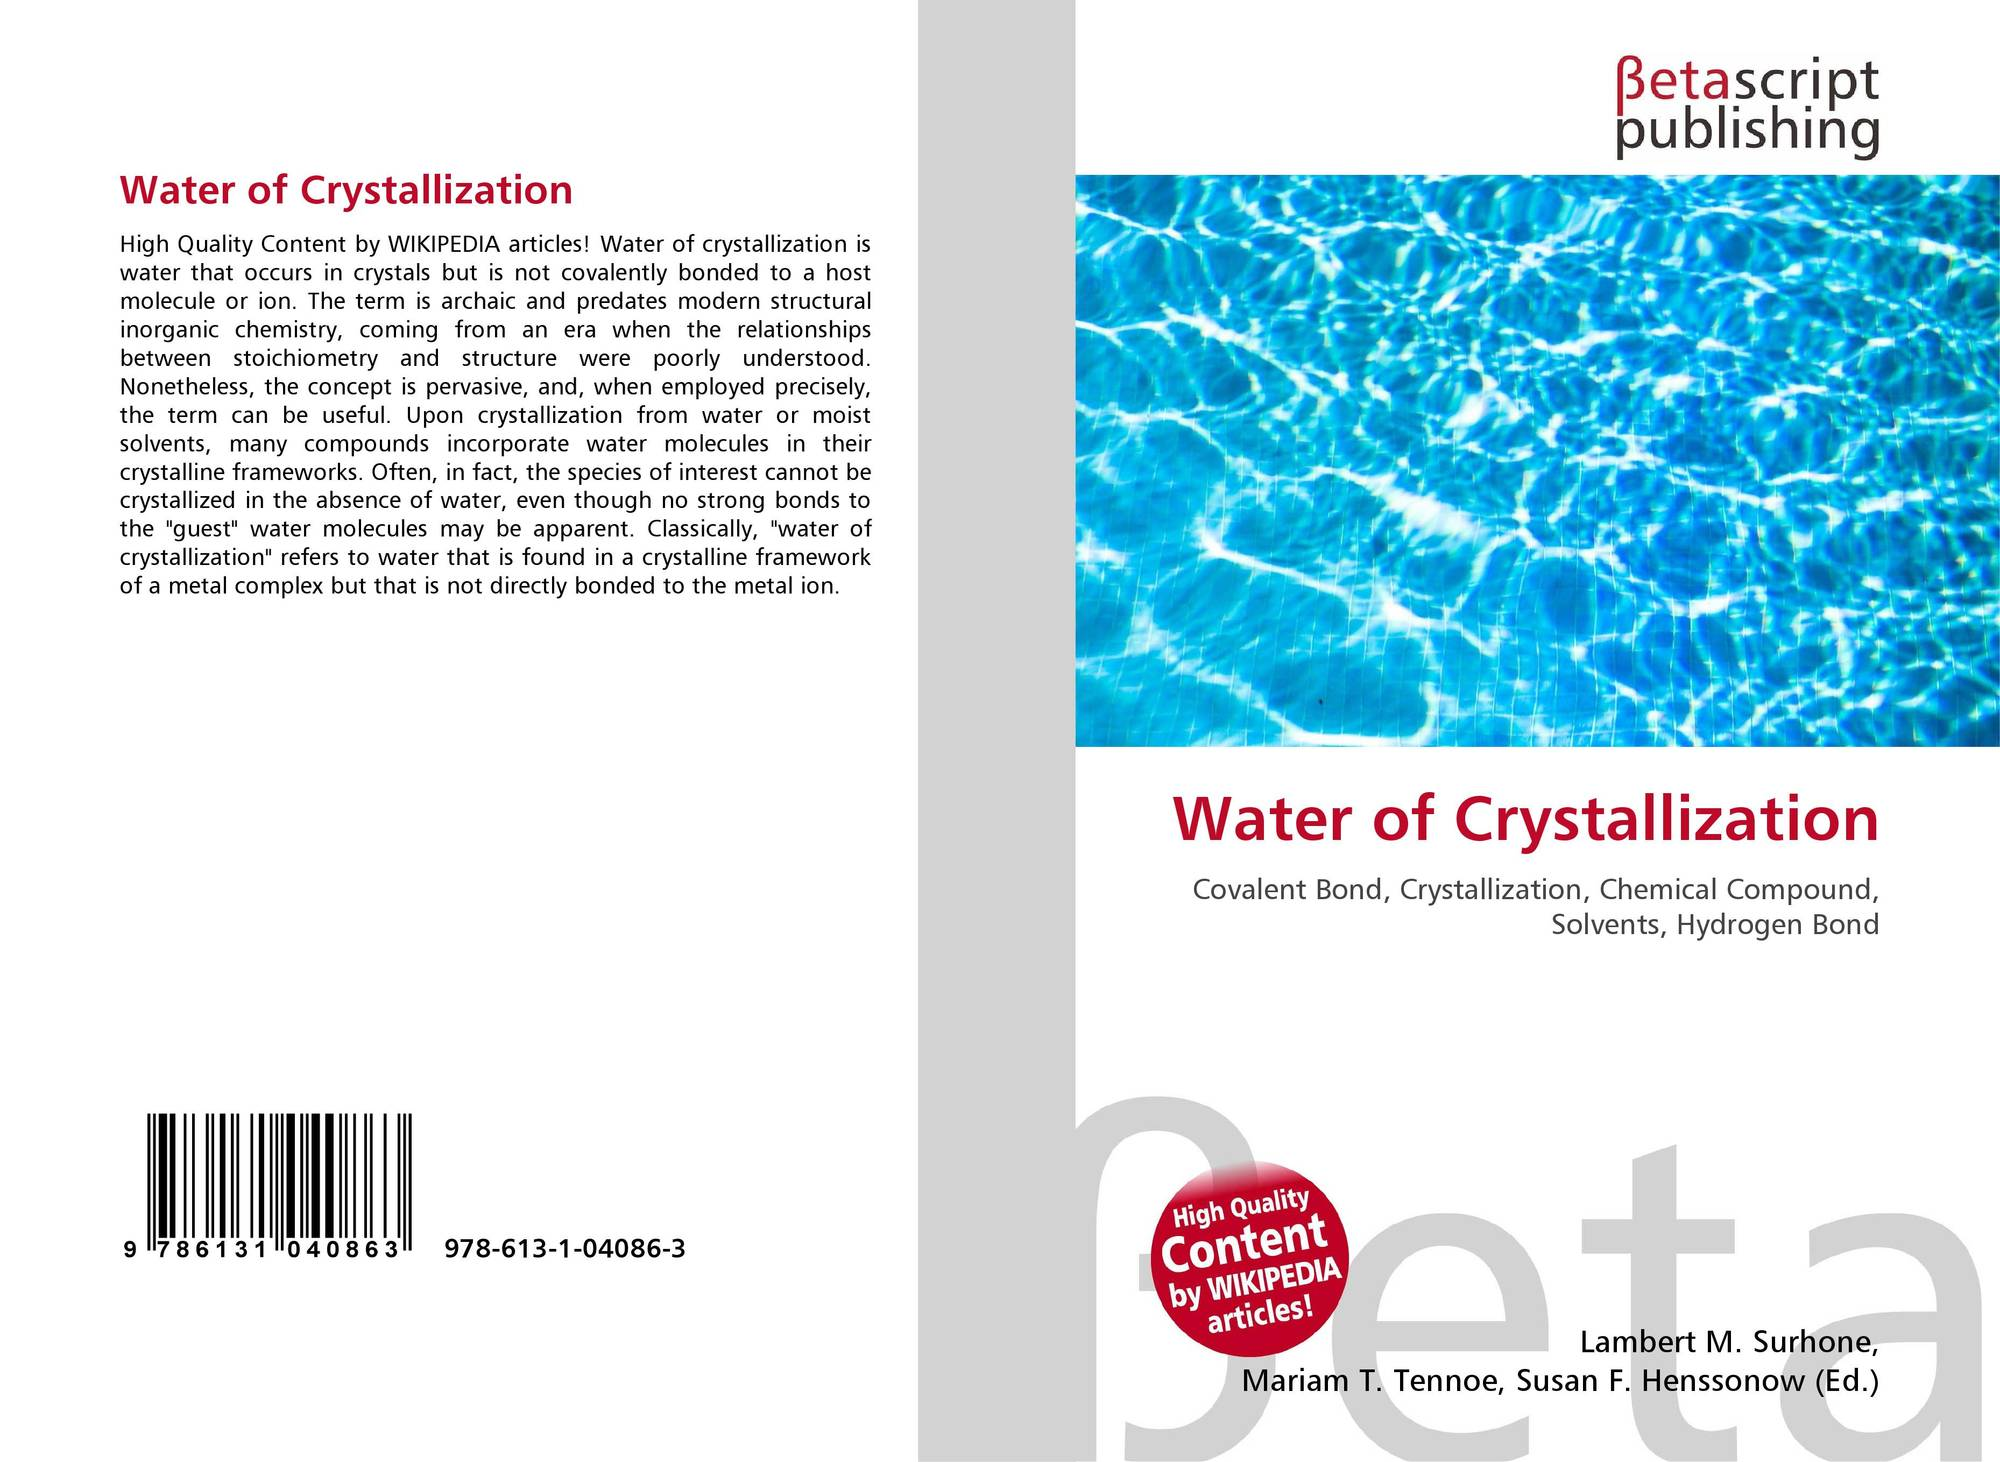 Water of Crystallization, 978-613-1-04086-3, 6131040869